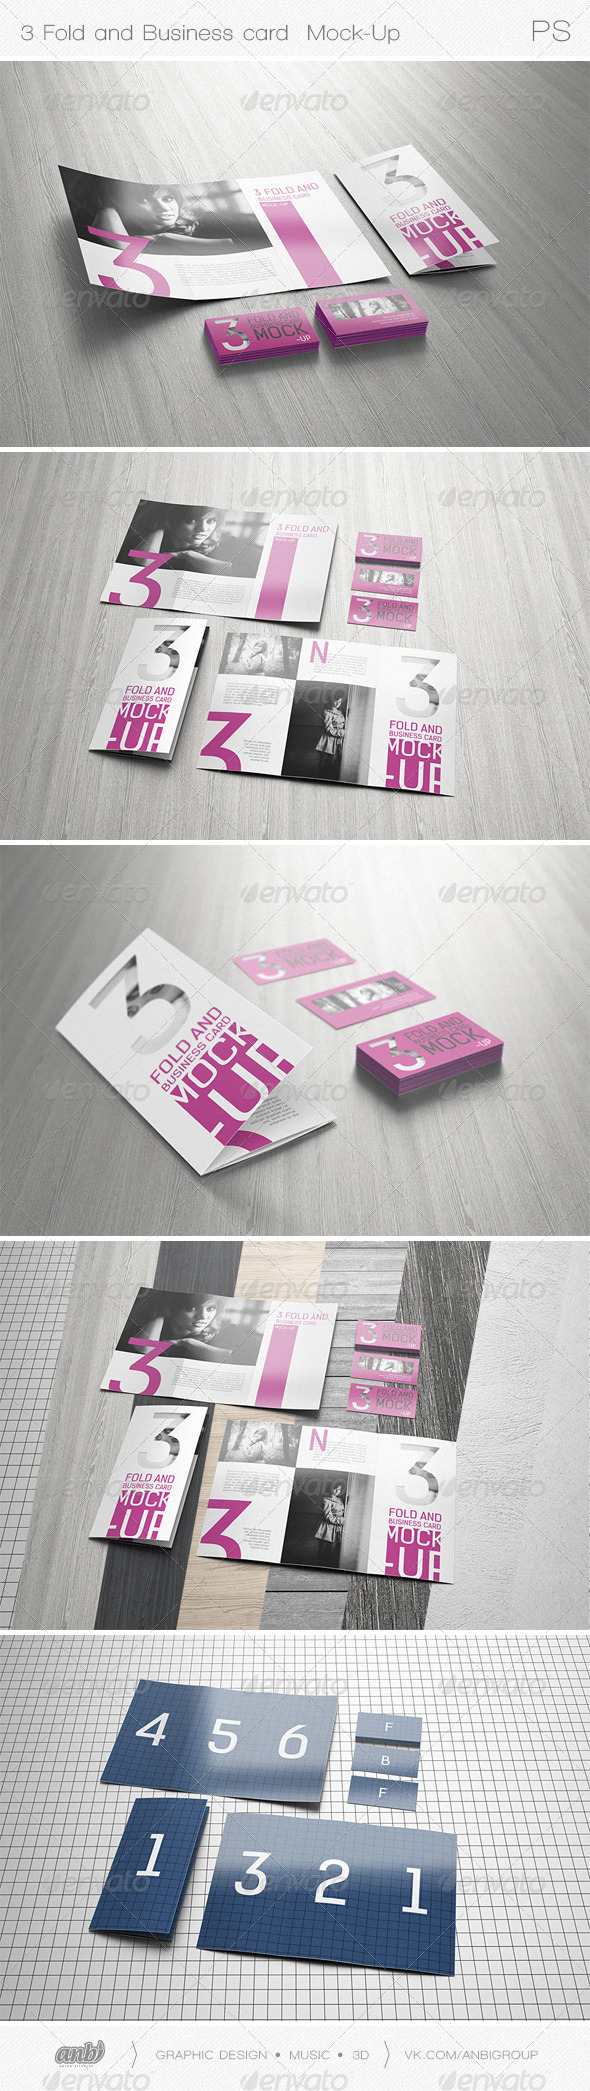 3 Fold and Business card Mock-Up - Print Product Mock-Ups